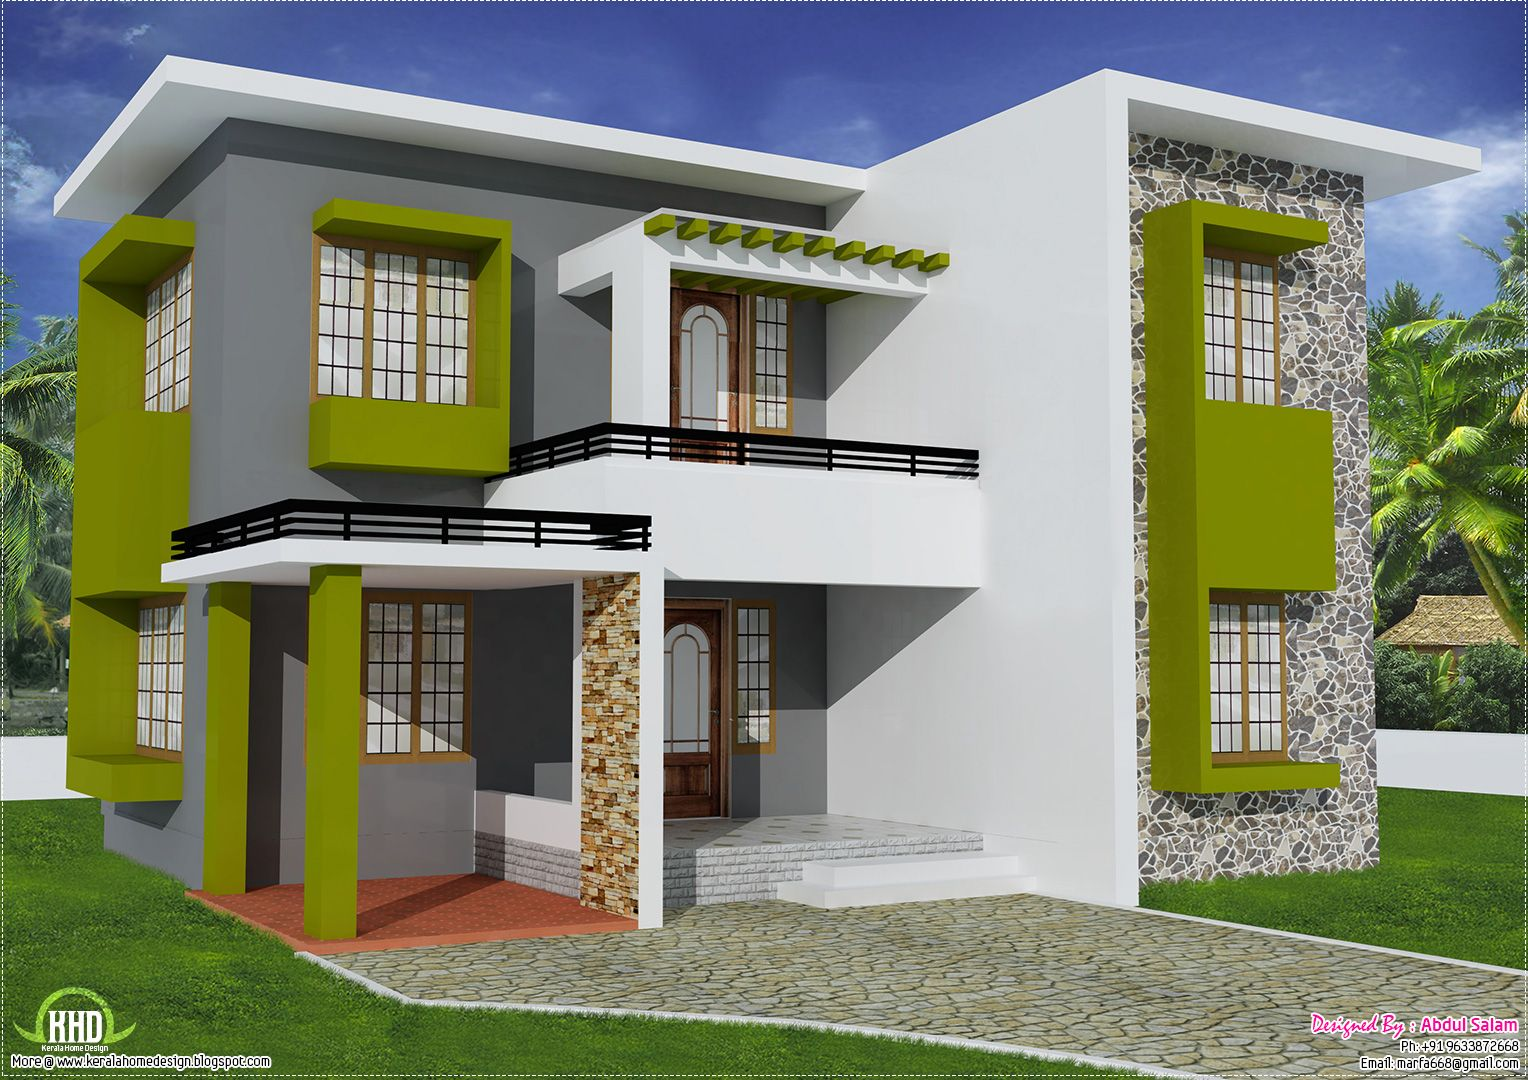 Sq feet flat roof home design house design plans roof for Flat roof bungalow designs